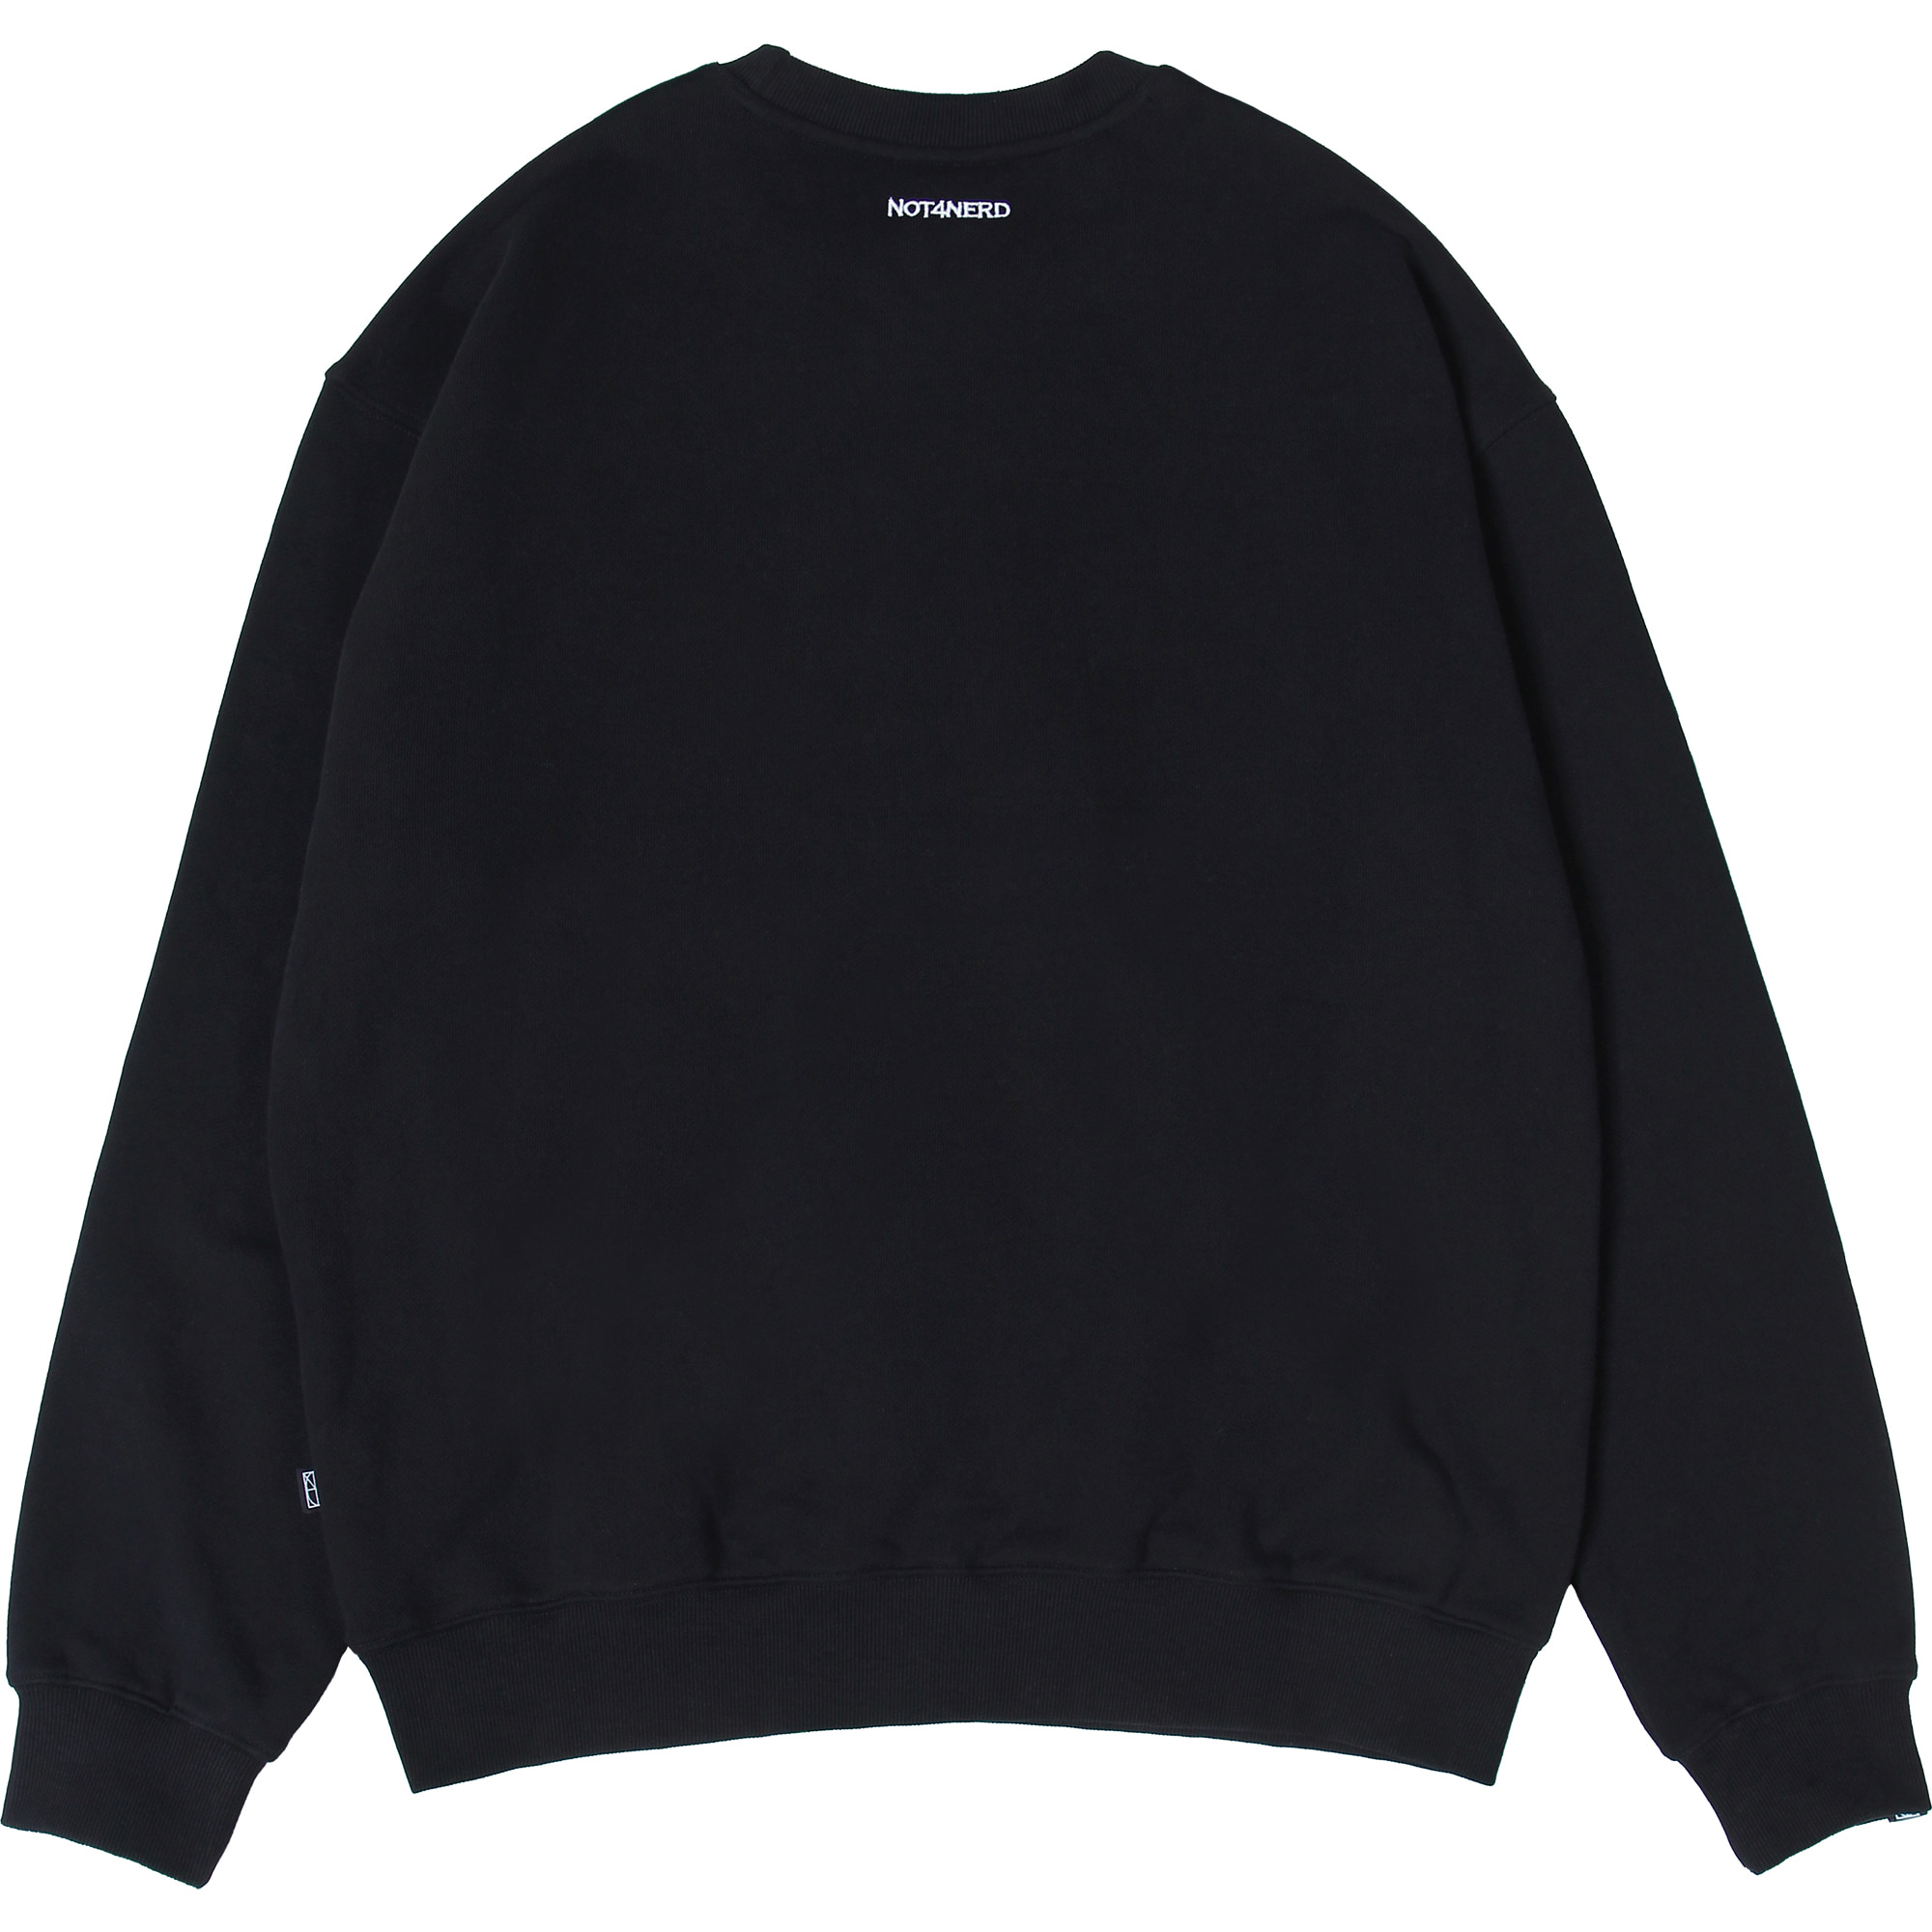 Money Printer Crewneck [Black],NOT4NERD